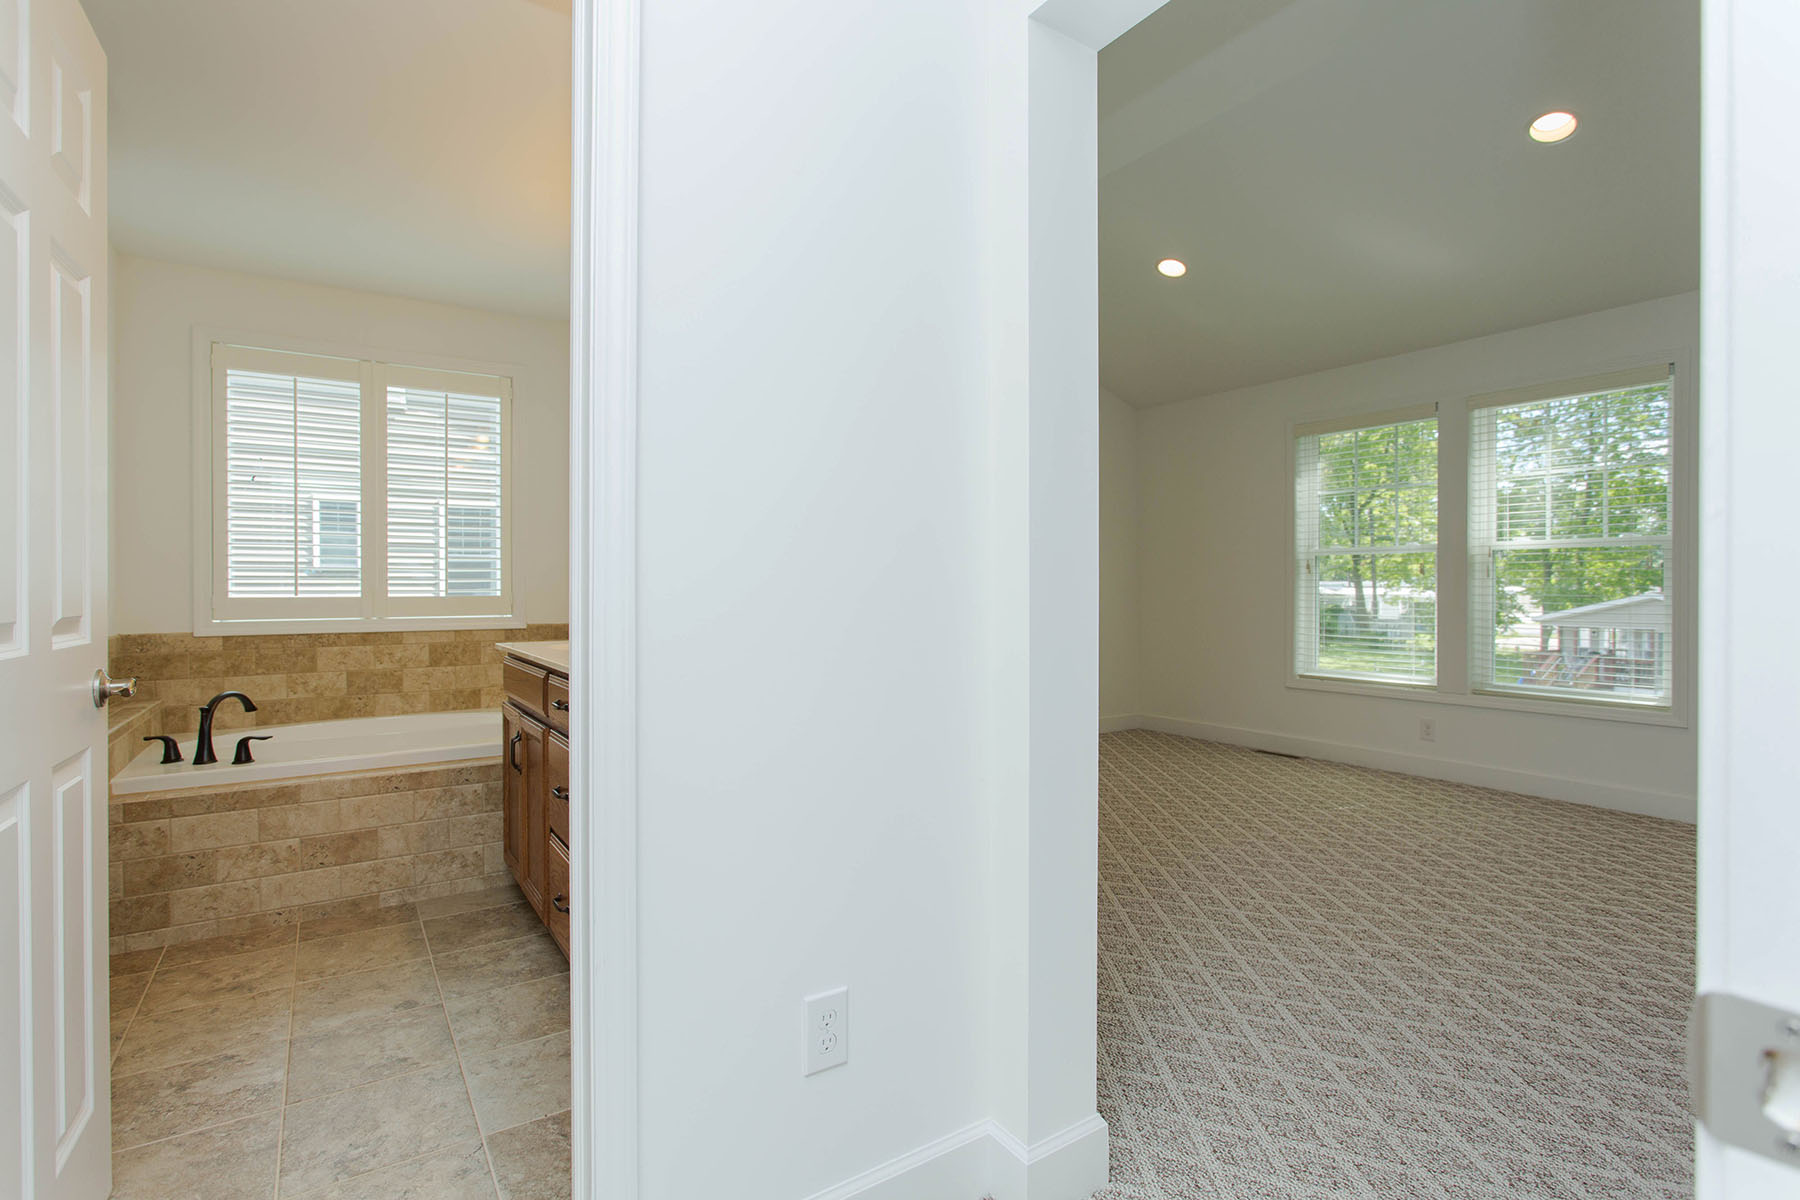 Additional photo for property listing at Newer Construction in Saratoga Springs 1  Mckenzies Way Saratoga Springs, New York 12866 United States